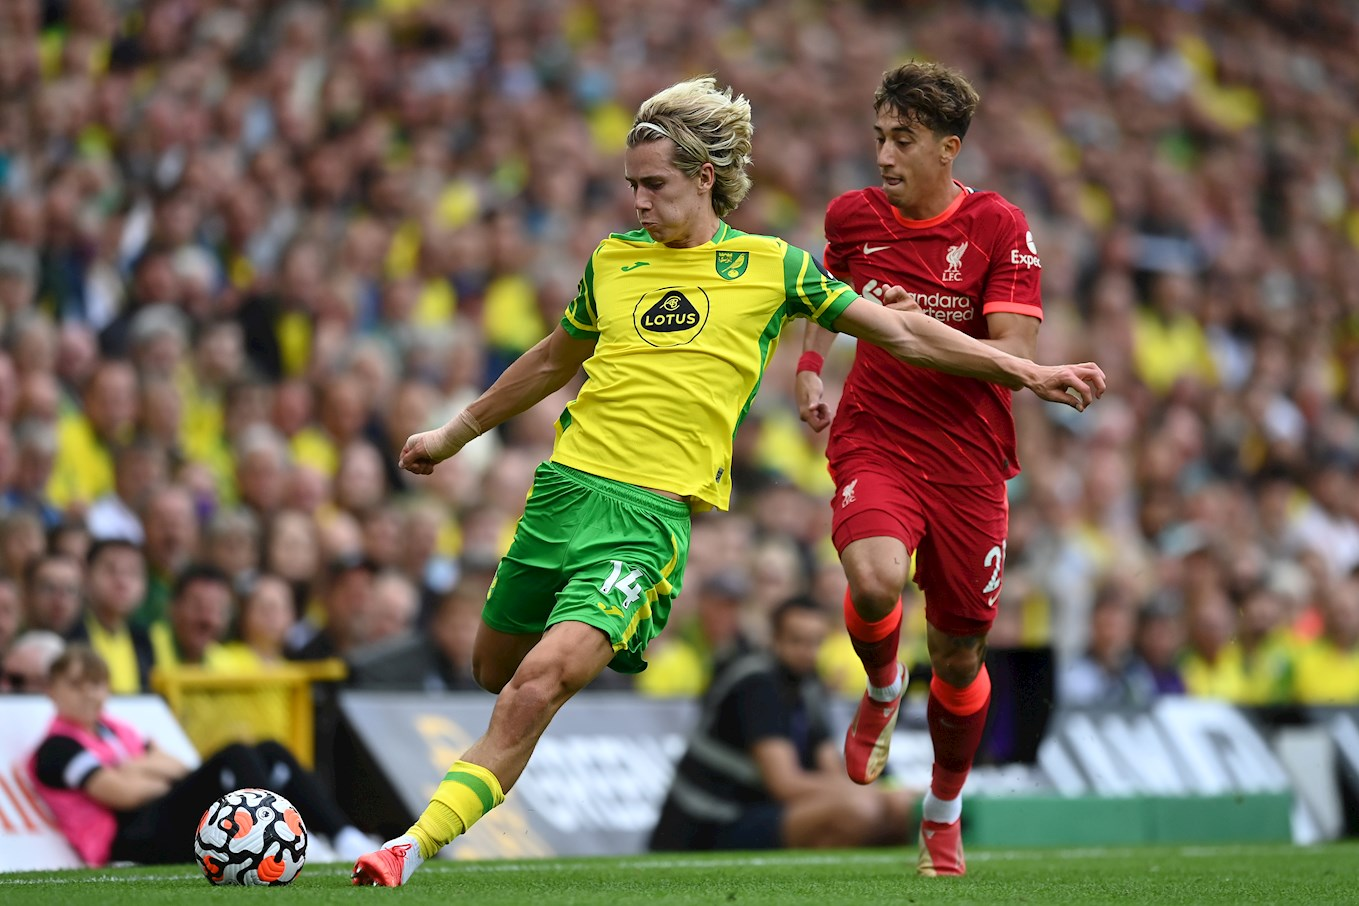 norwich-beaten-on-opening-day-of-the-season-at-home-to-liverpool